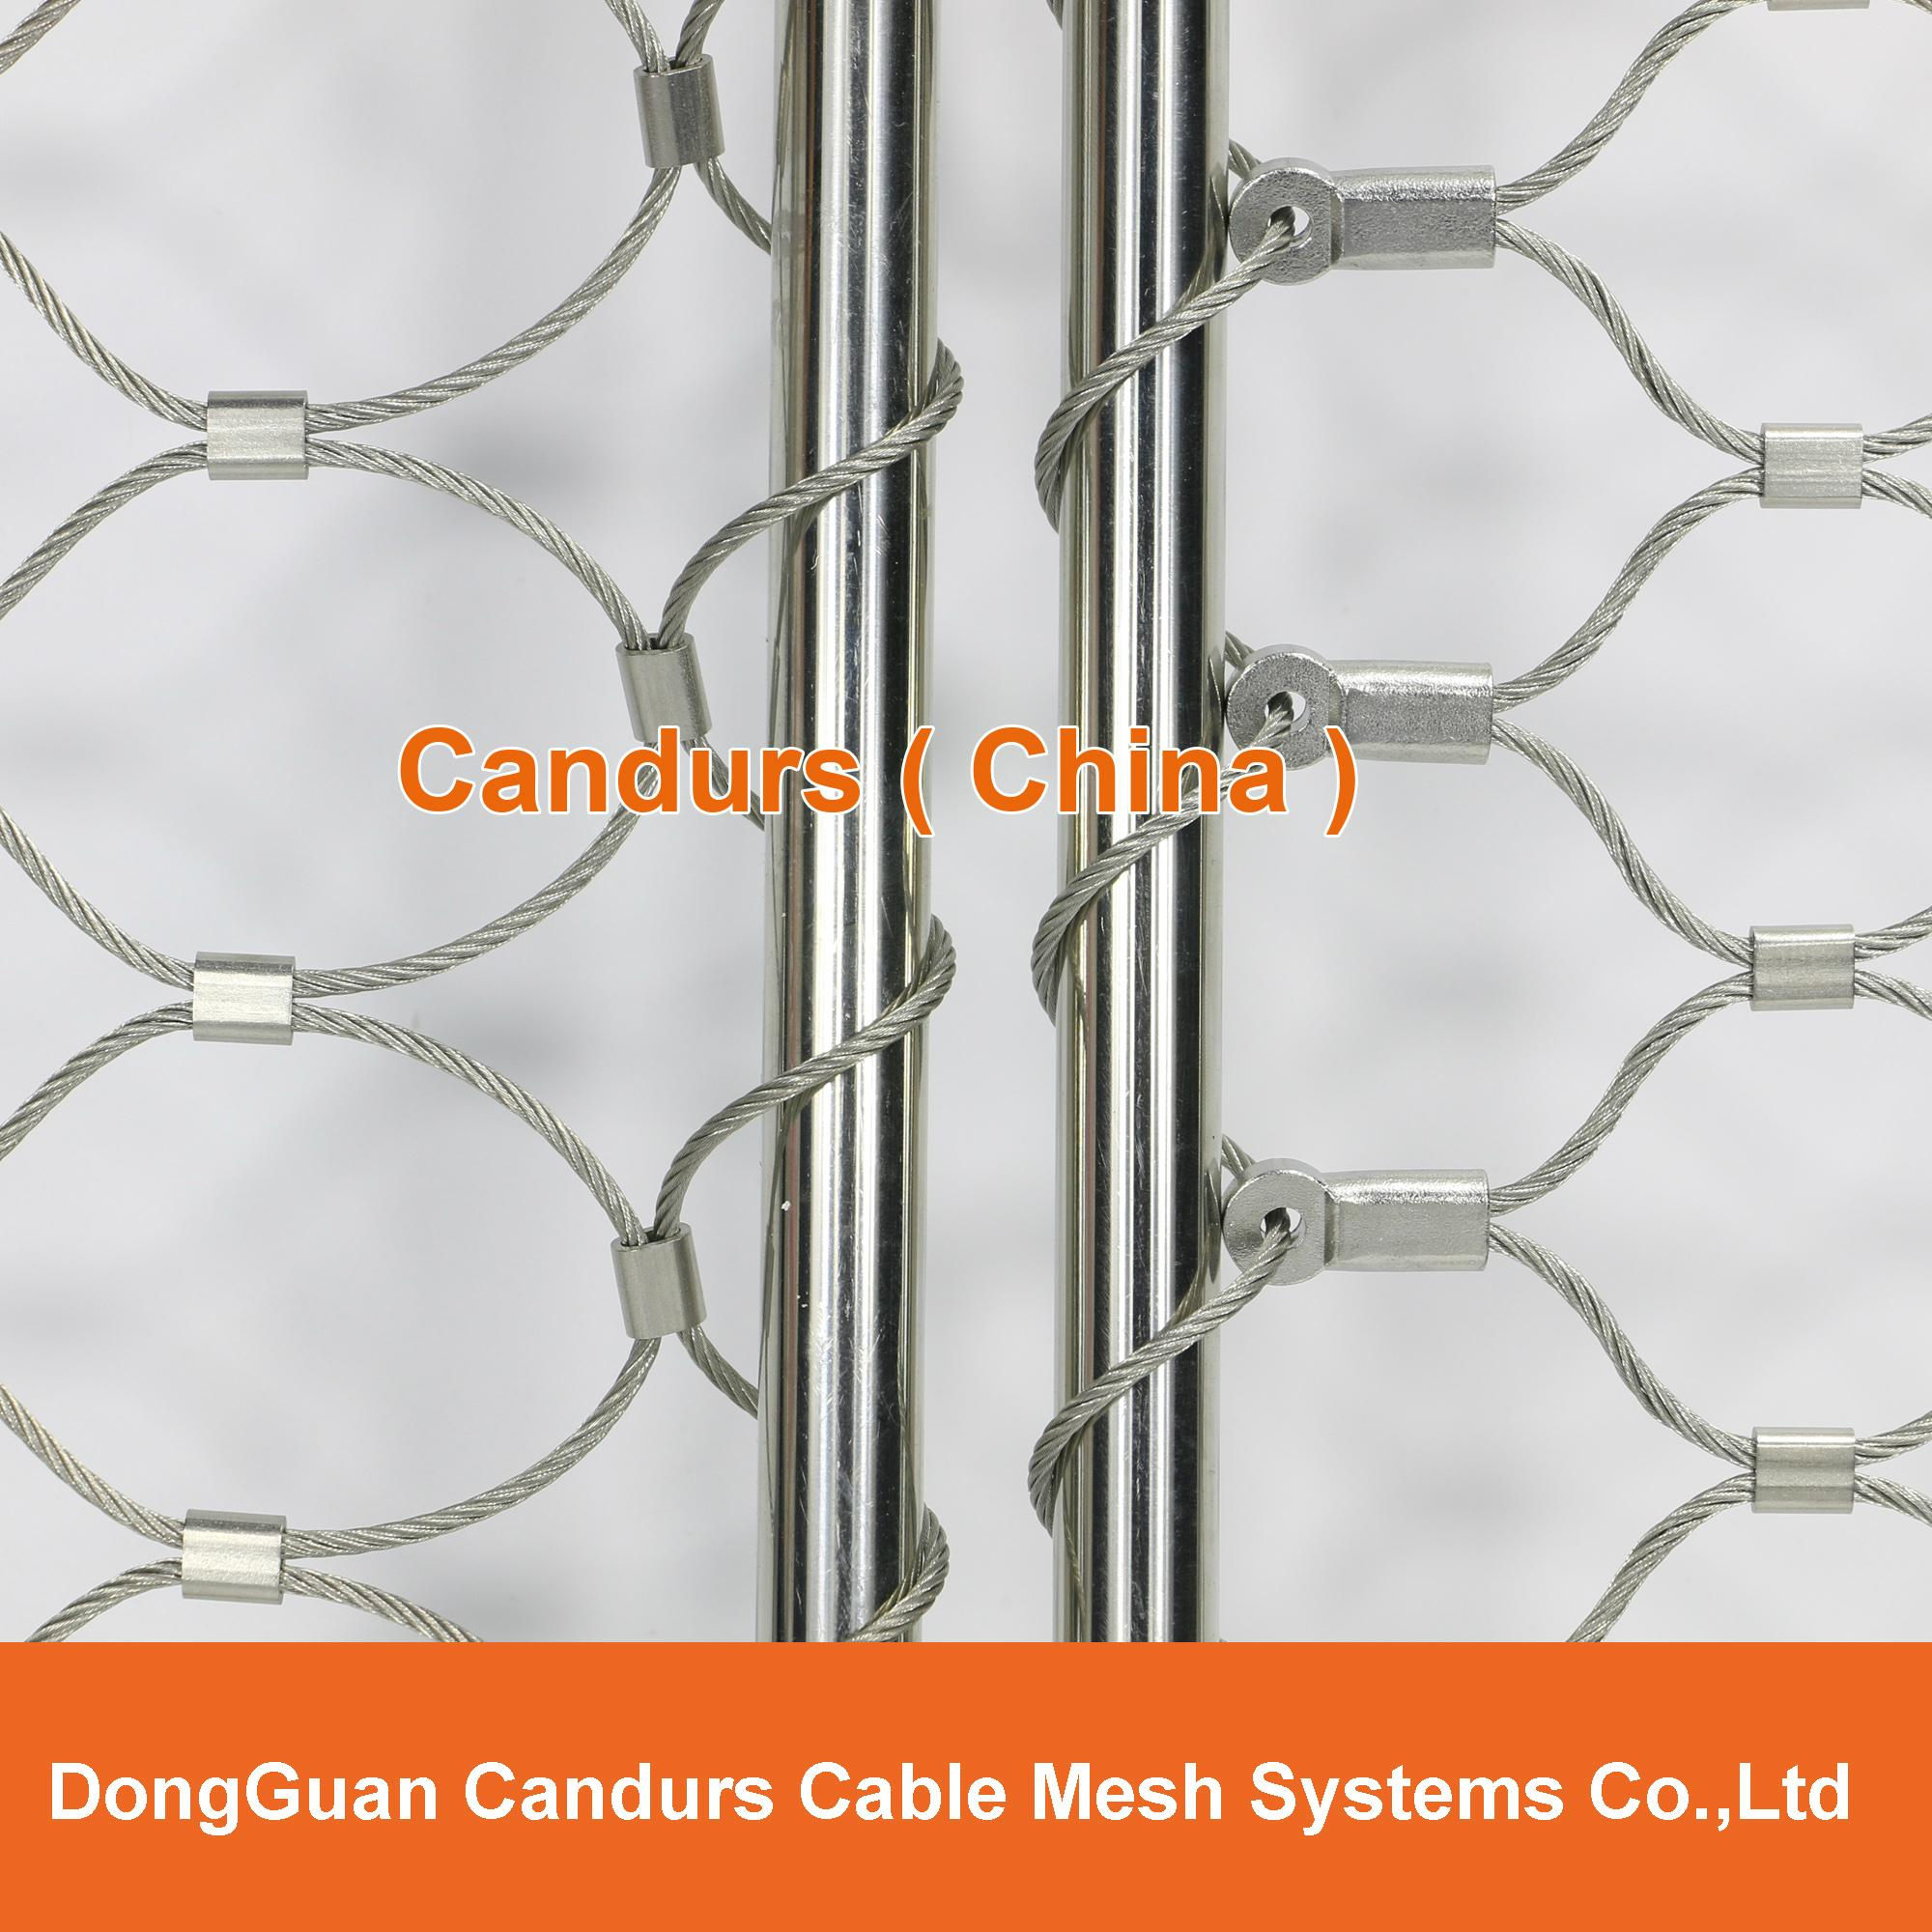 X Tend Flexible Stainless Steel Cable (Rope) Mesh 14